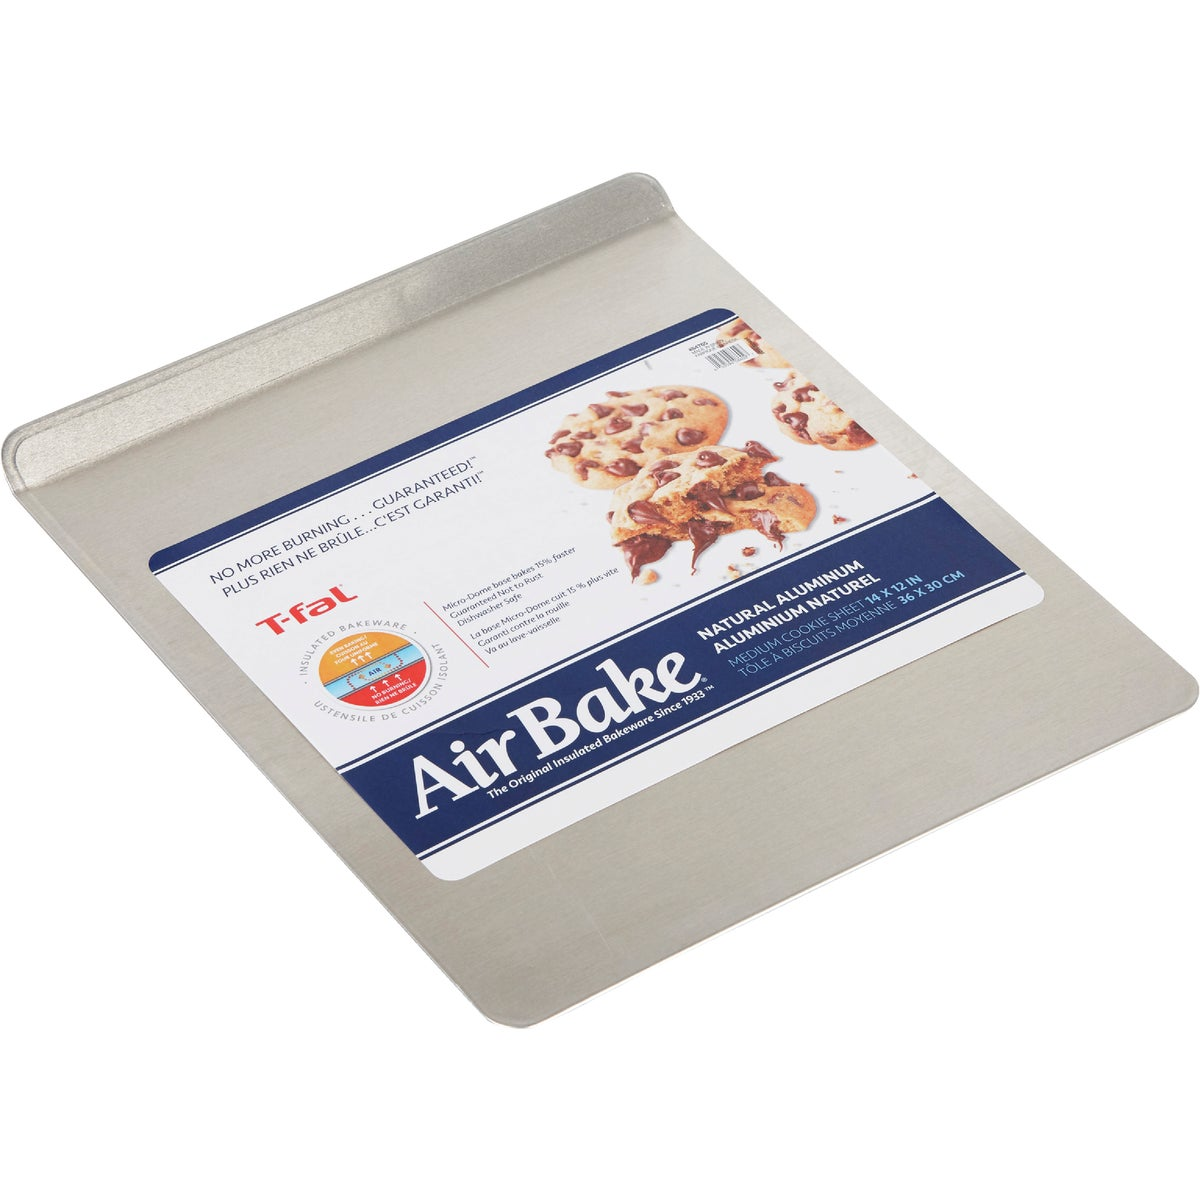 12X14 AIR BAKING SHEET - 84765 by Bradshaw